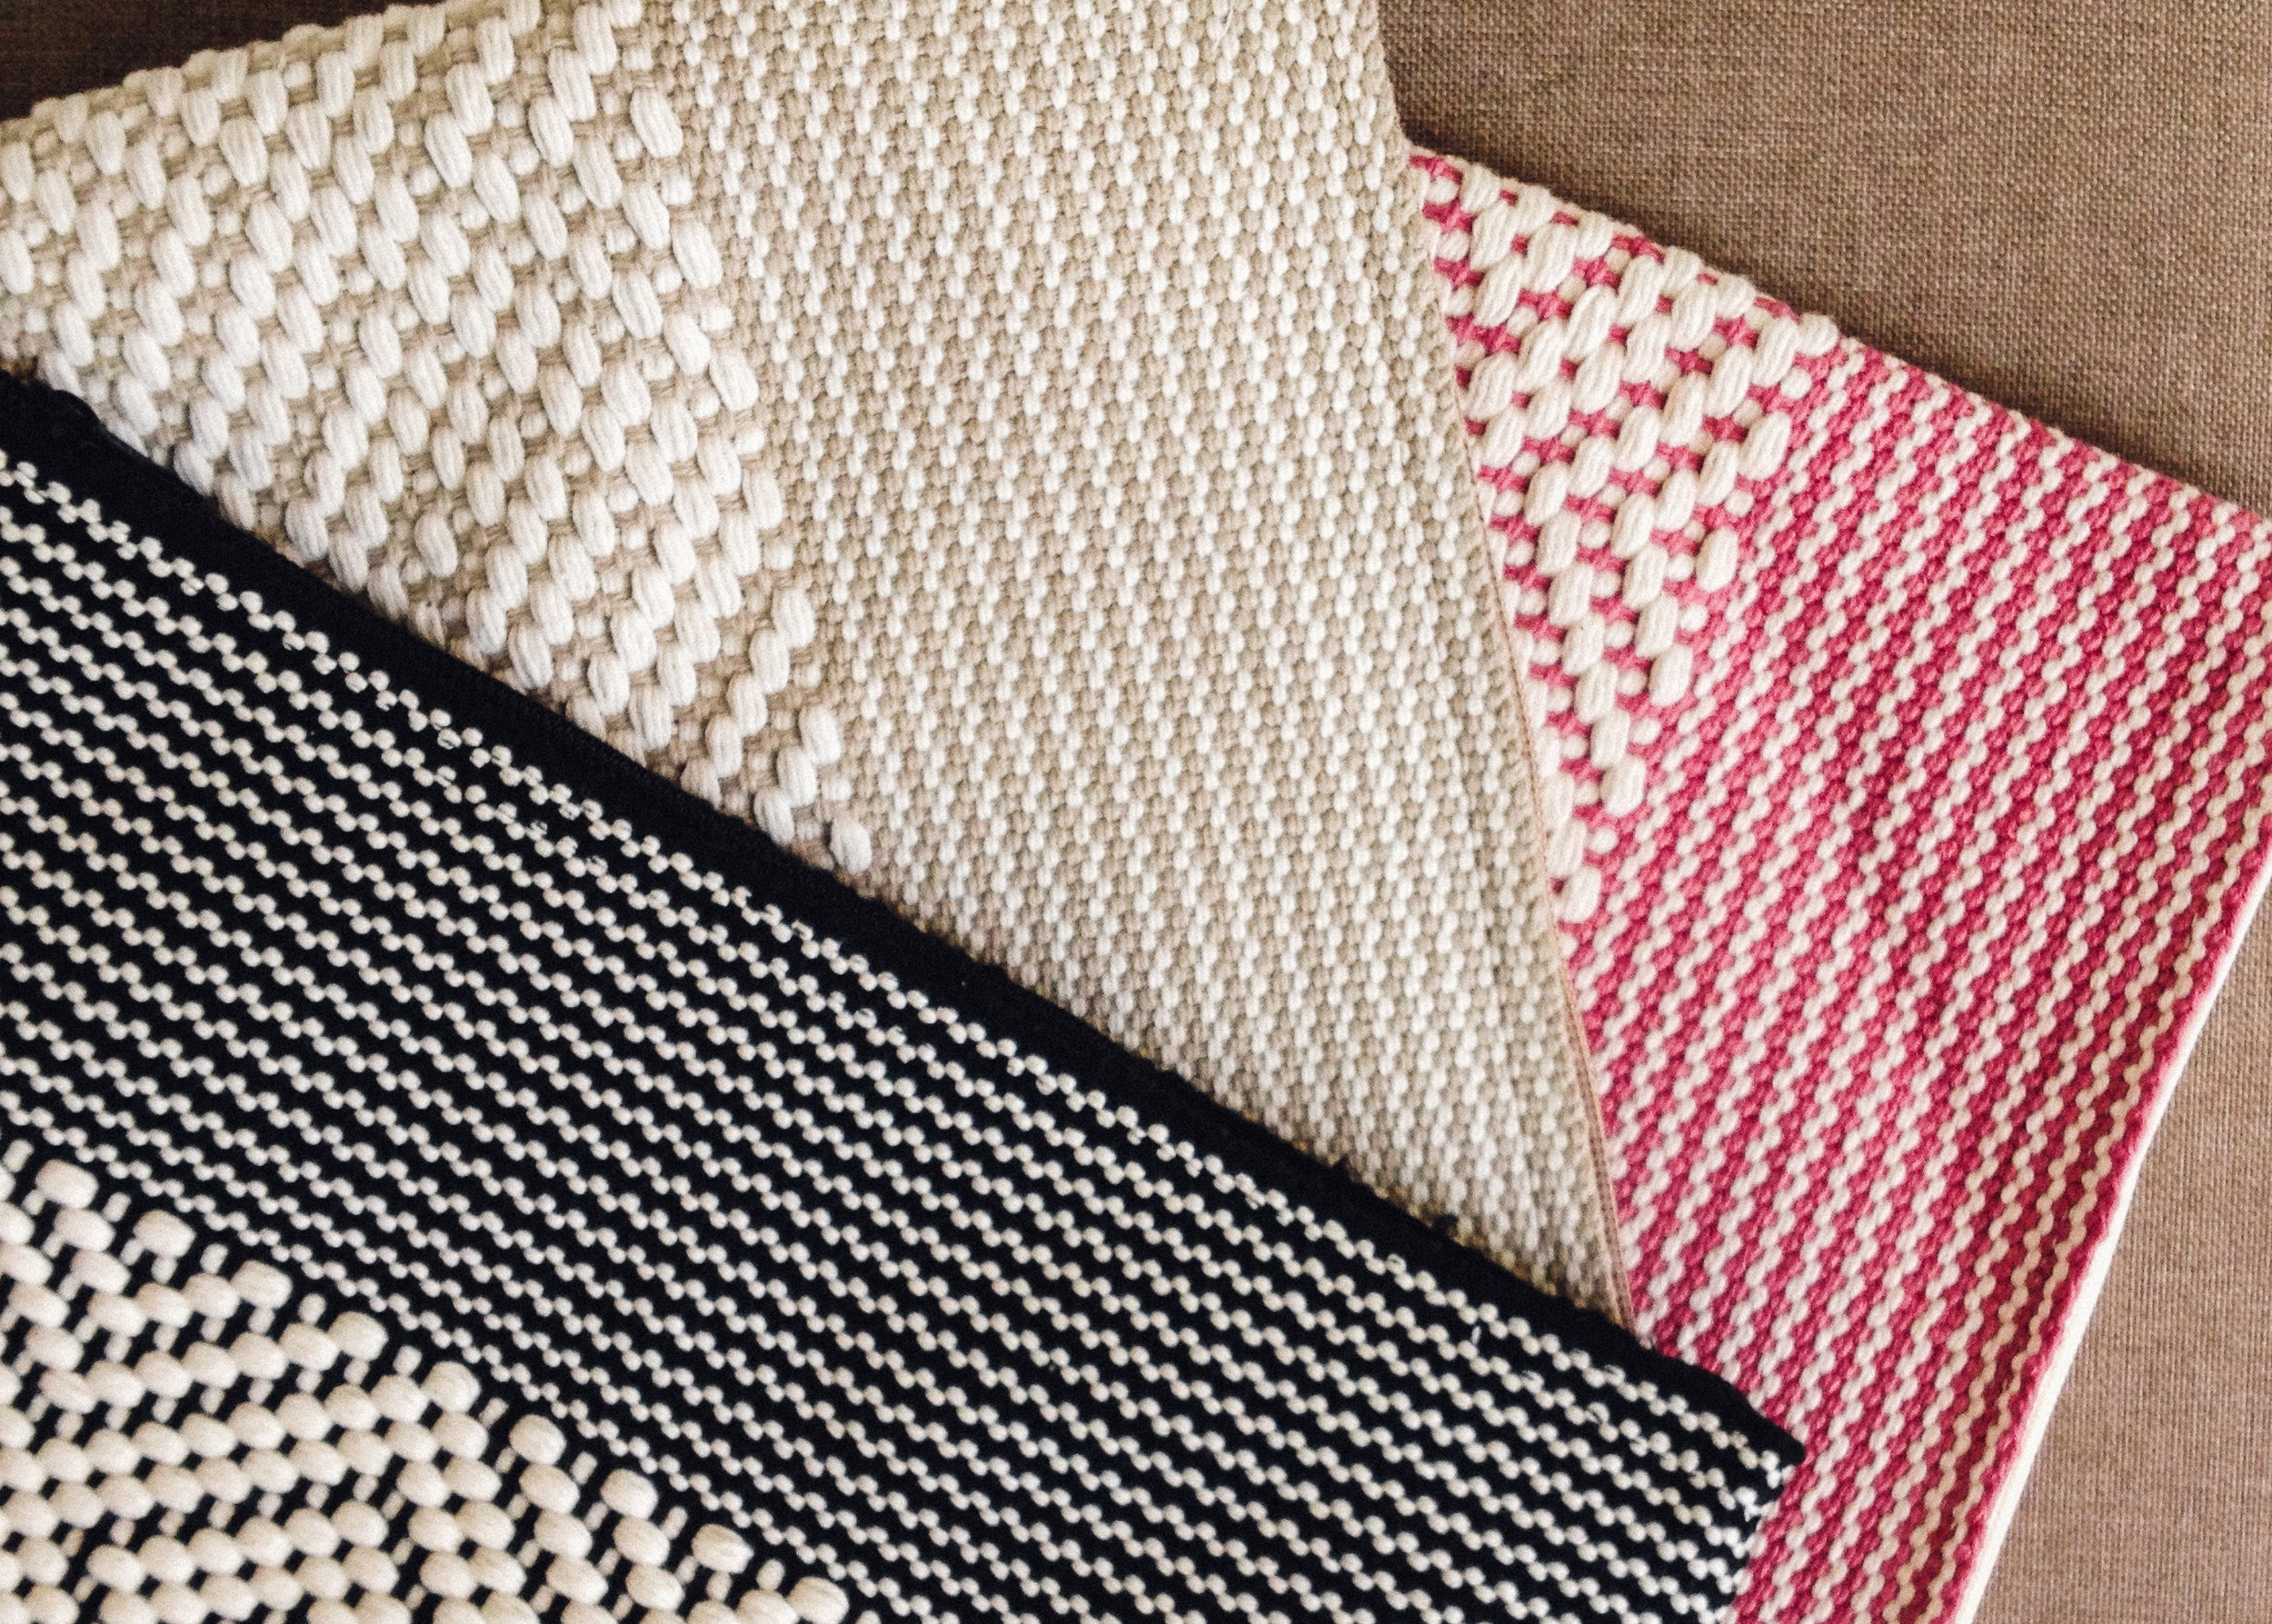 The  OROS Loomed Clutches . Handwoven from organic cotton threads by artisans in Mexico.